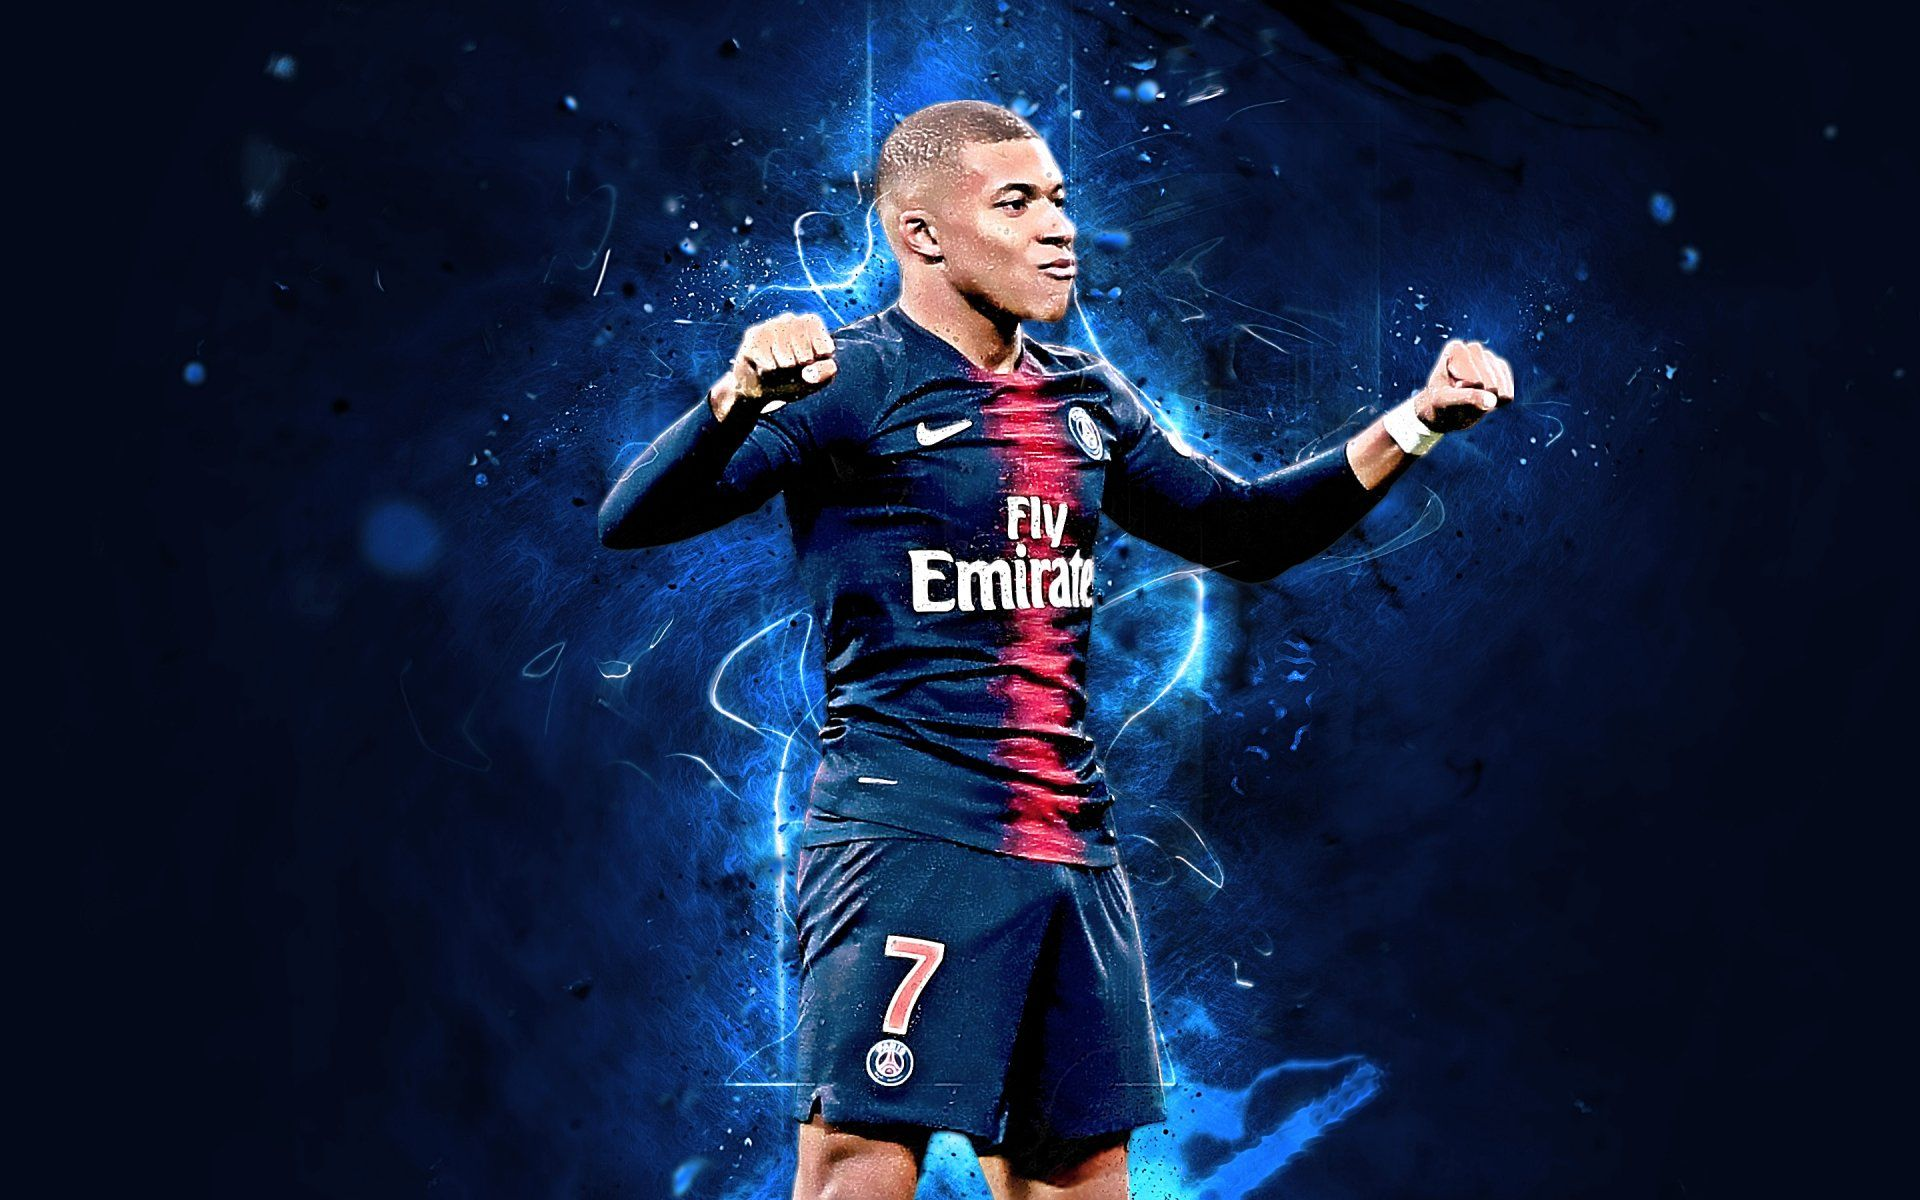 Mbappe Wallpapers Top Free Mbappe Backgrounds Wallpaperaccess